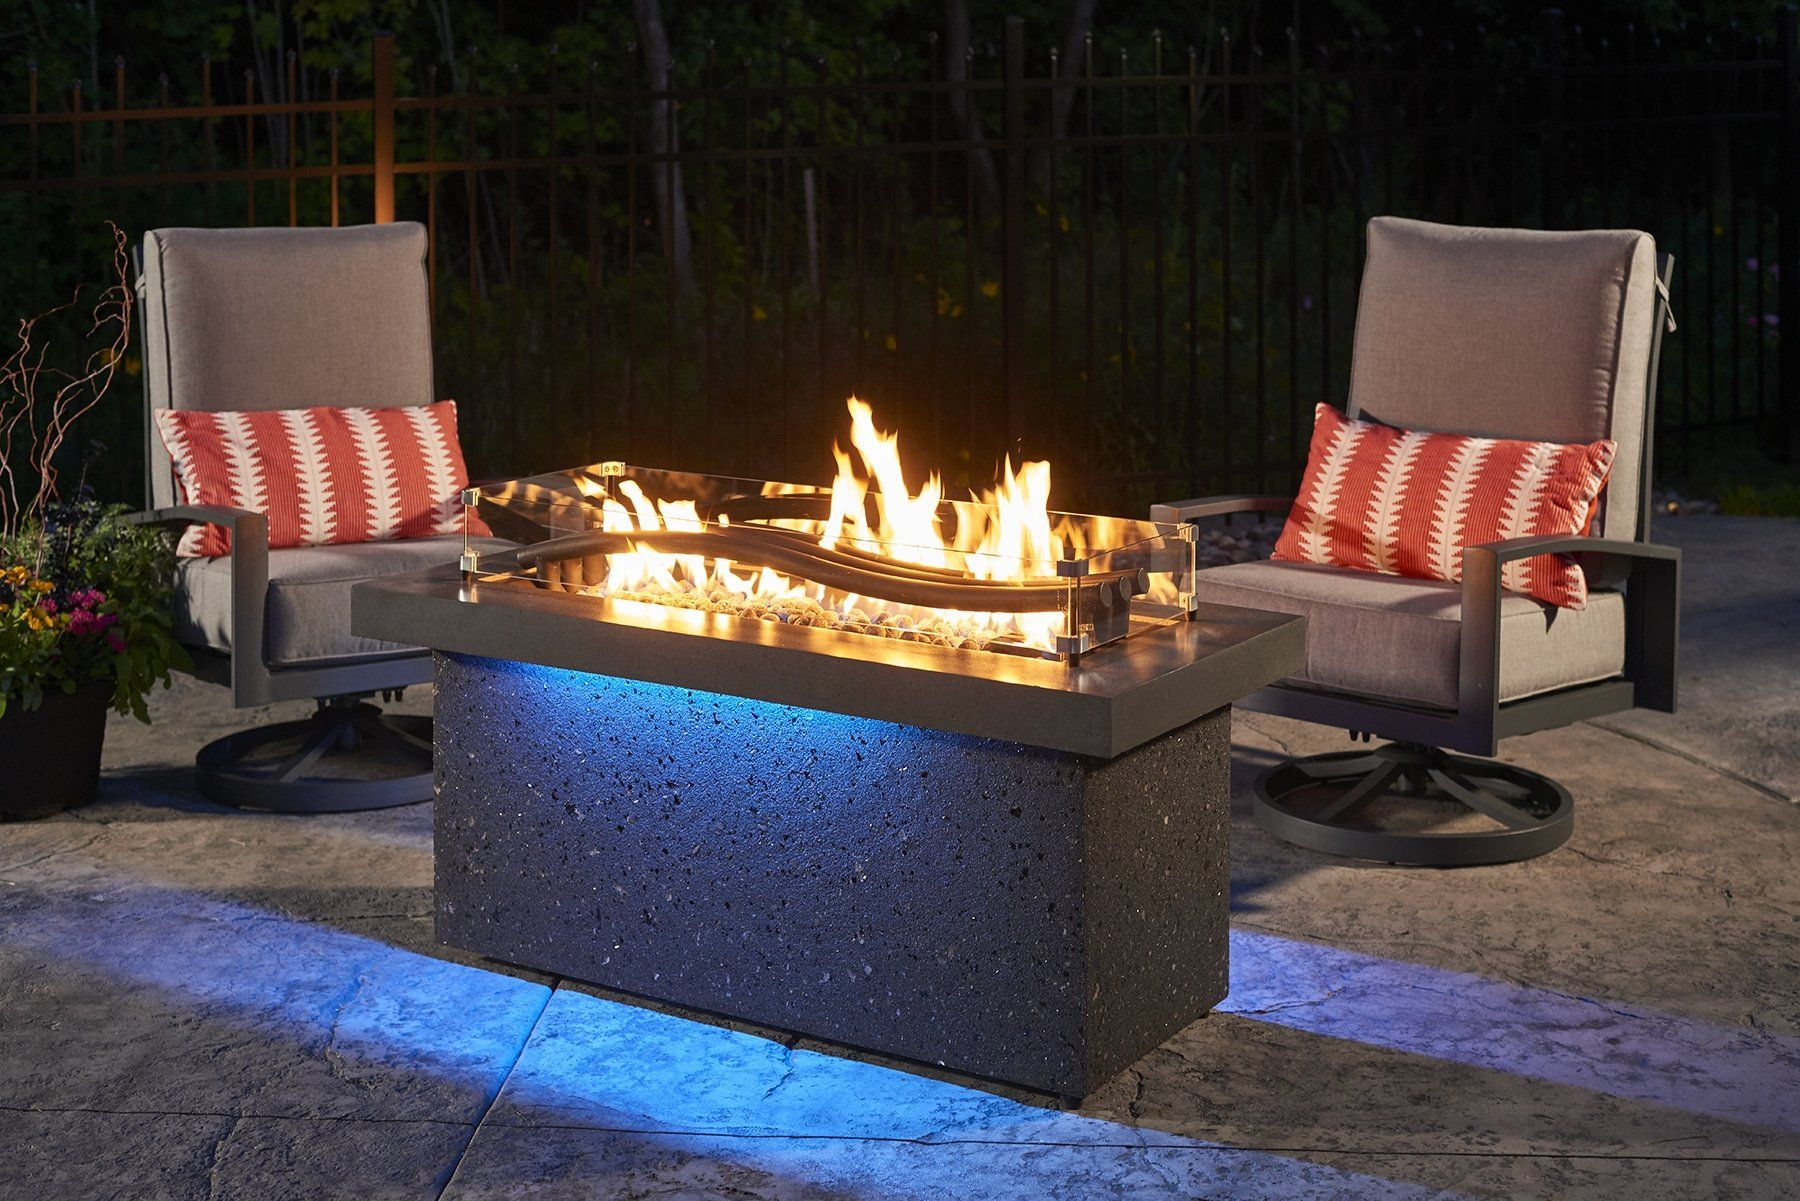 How Many Btus Do I Need In My Gas Fire Pit The Outdoor Greatroom Company Has Your Outdoor Living Btu Answers Fire Pit Table Modern Fire Pit Fire Pit